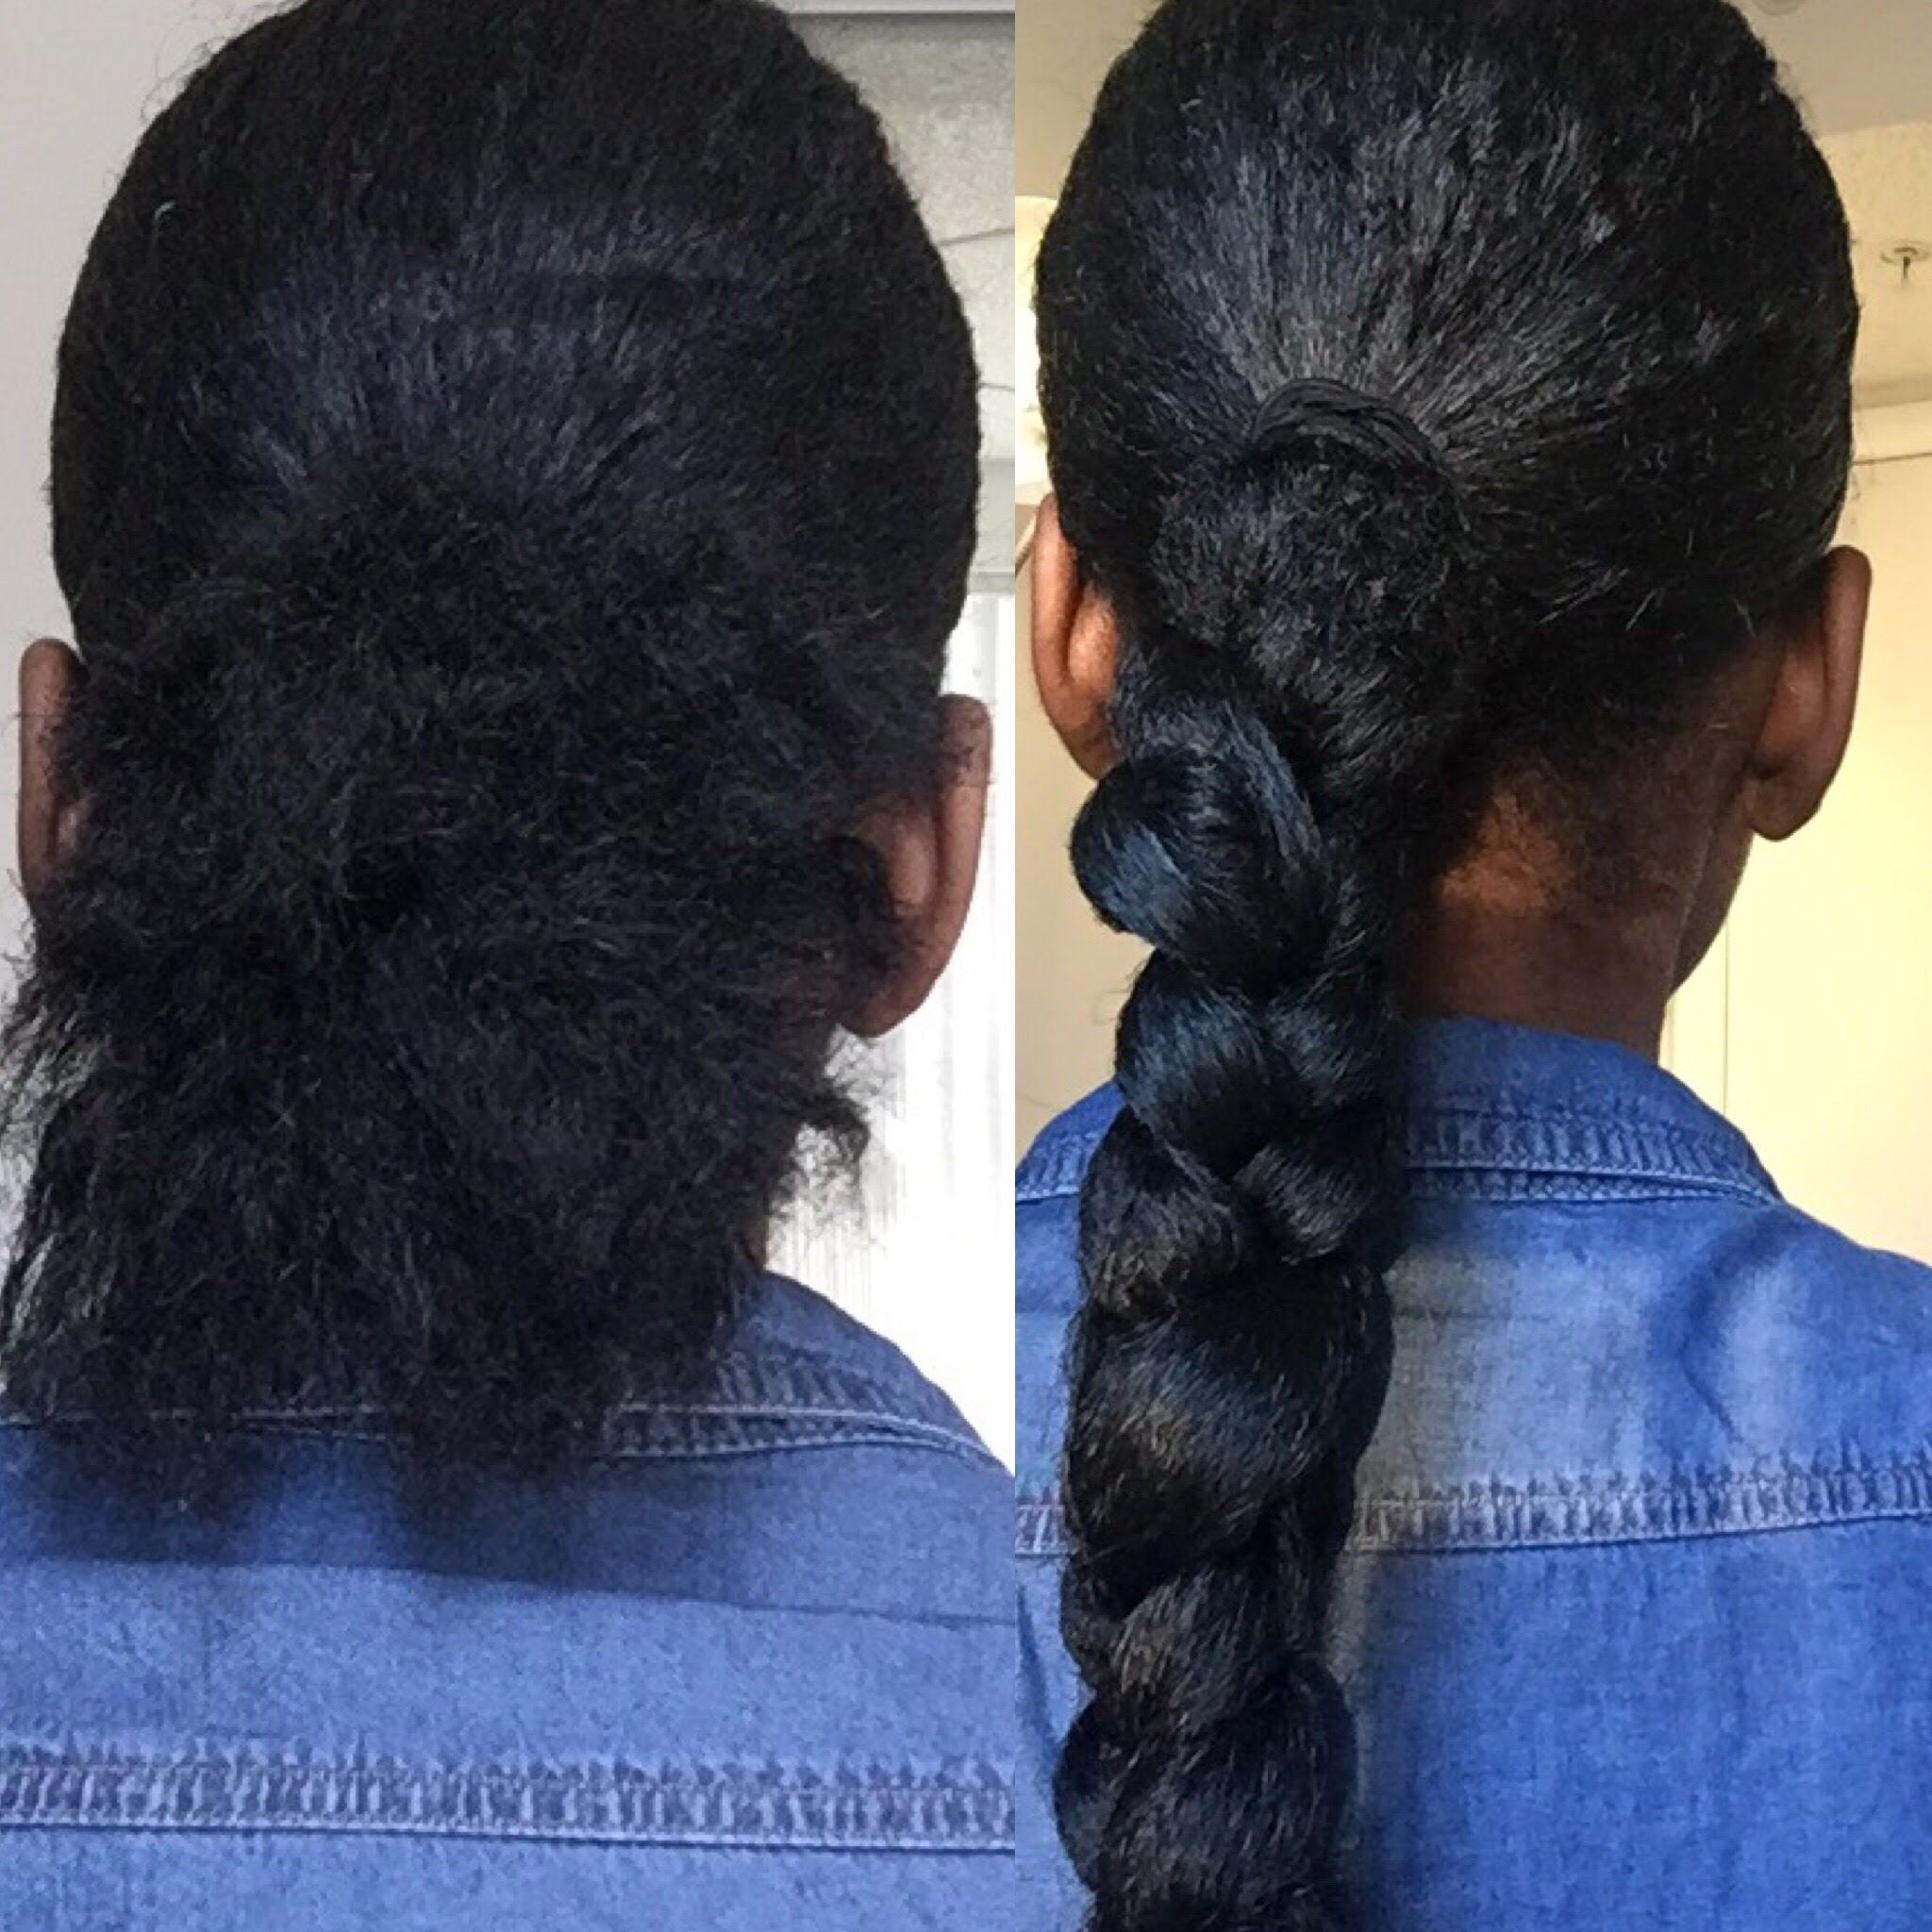 The Perfect Low Ponytail Braid With Braiding Hair You Must Watch Braided Ponytail Braided Hairstyles Braided Bun Hairstyles